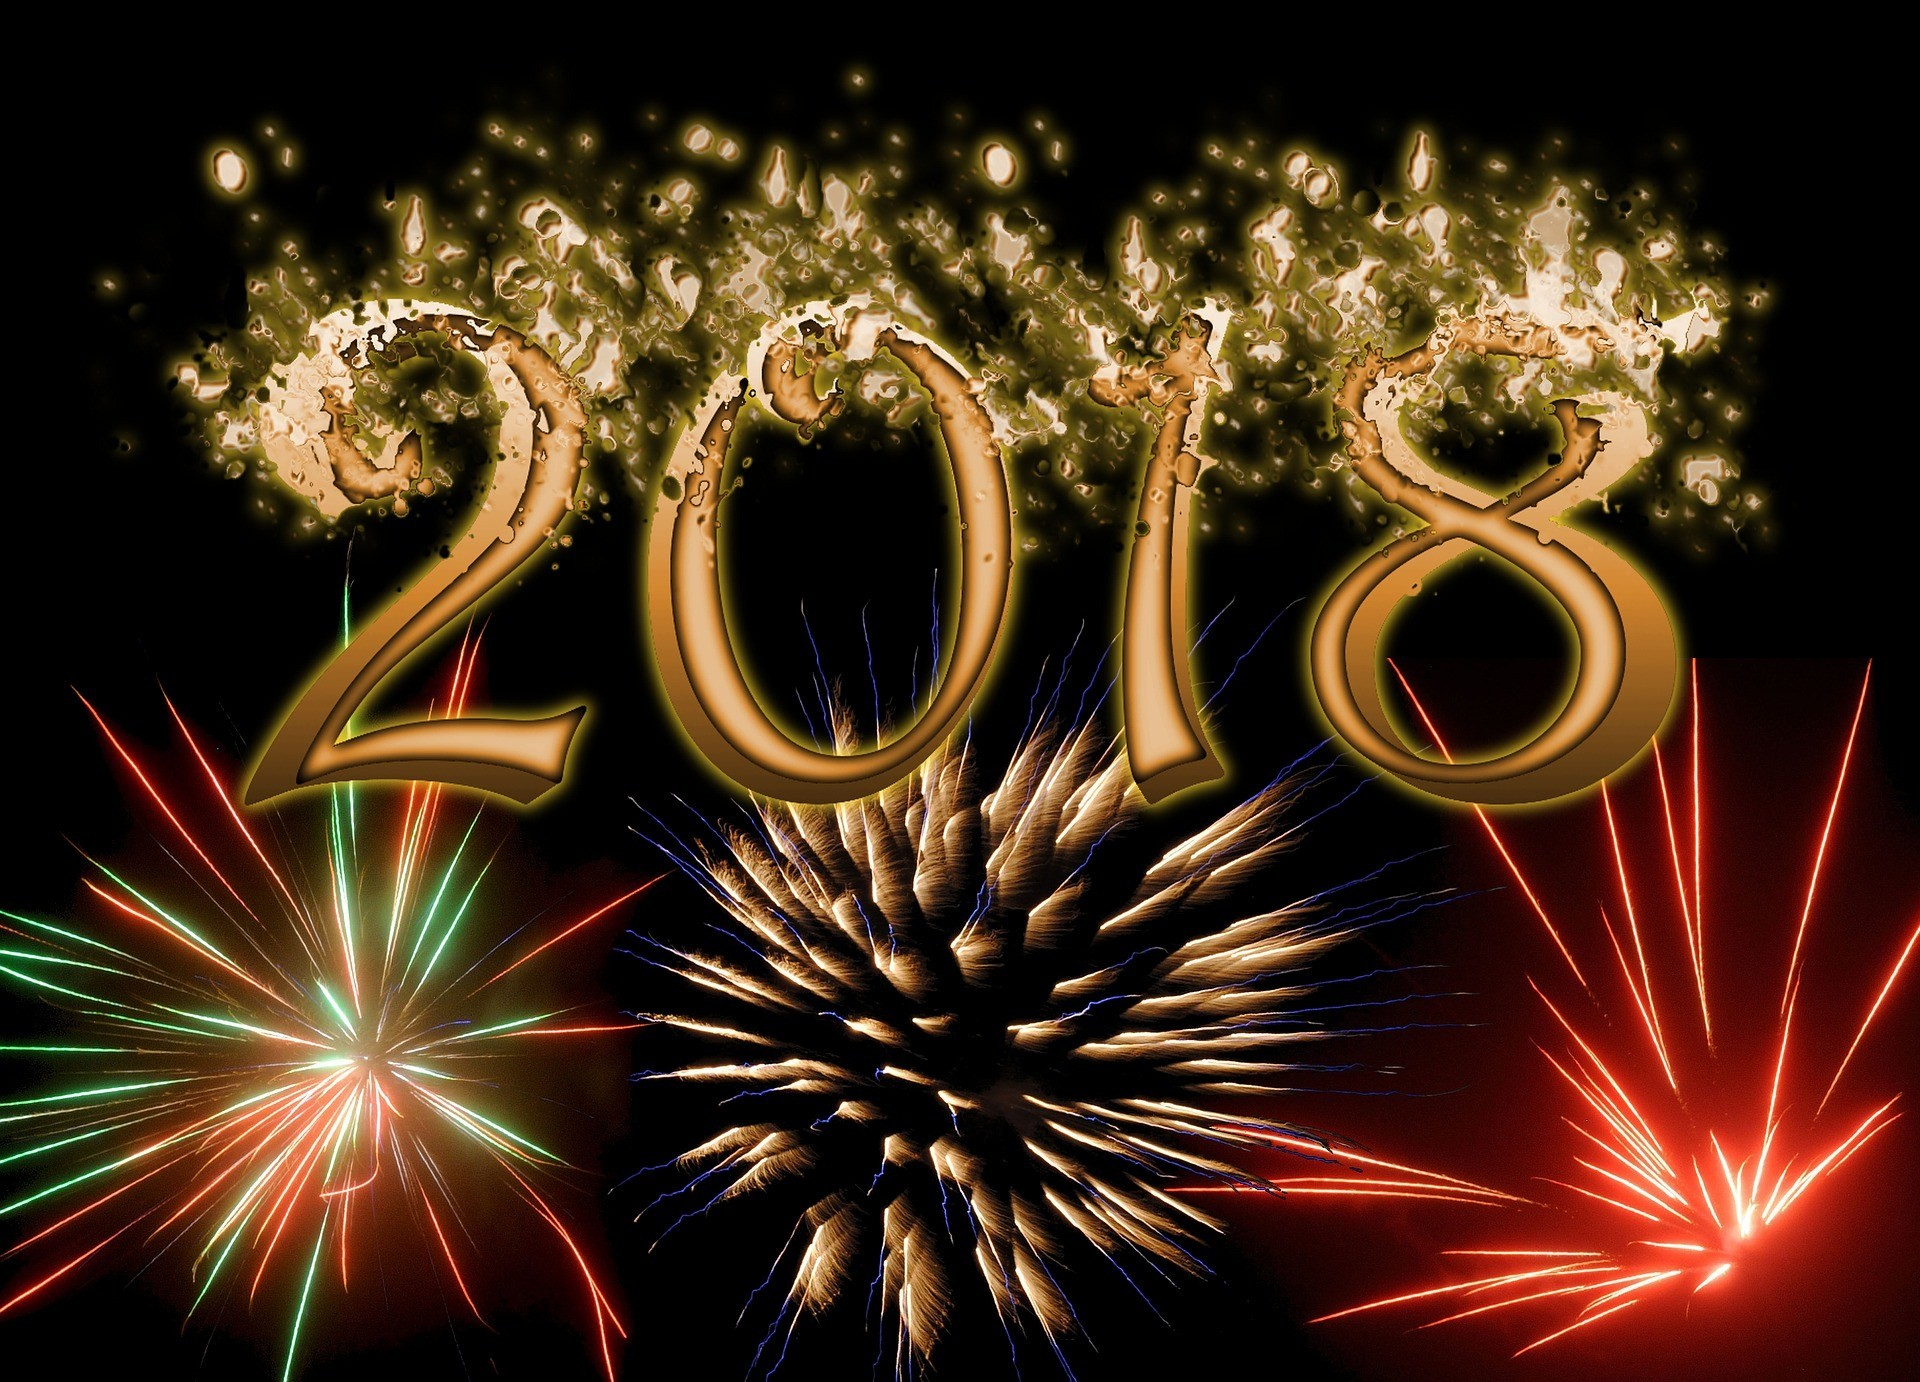 wallpaper 2018 can also be used as happy new year greeting download tagsfull